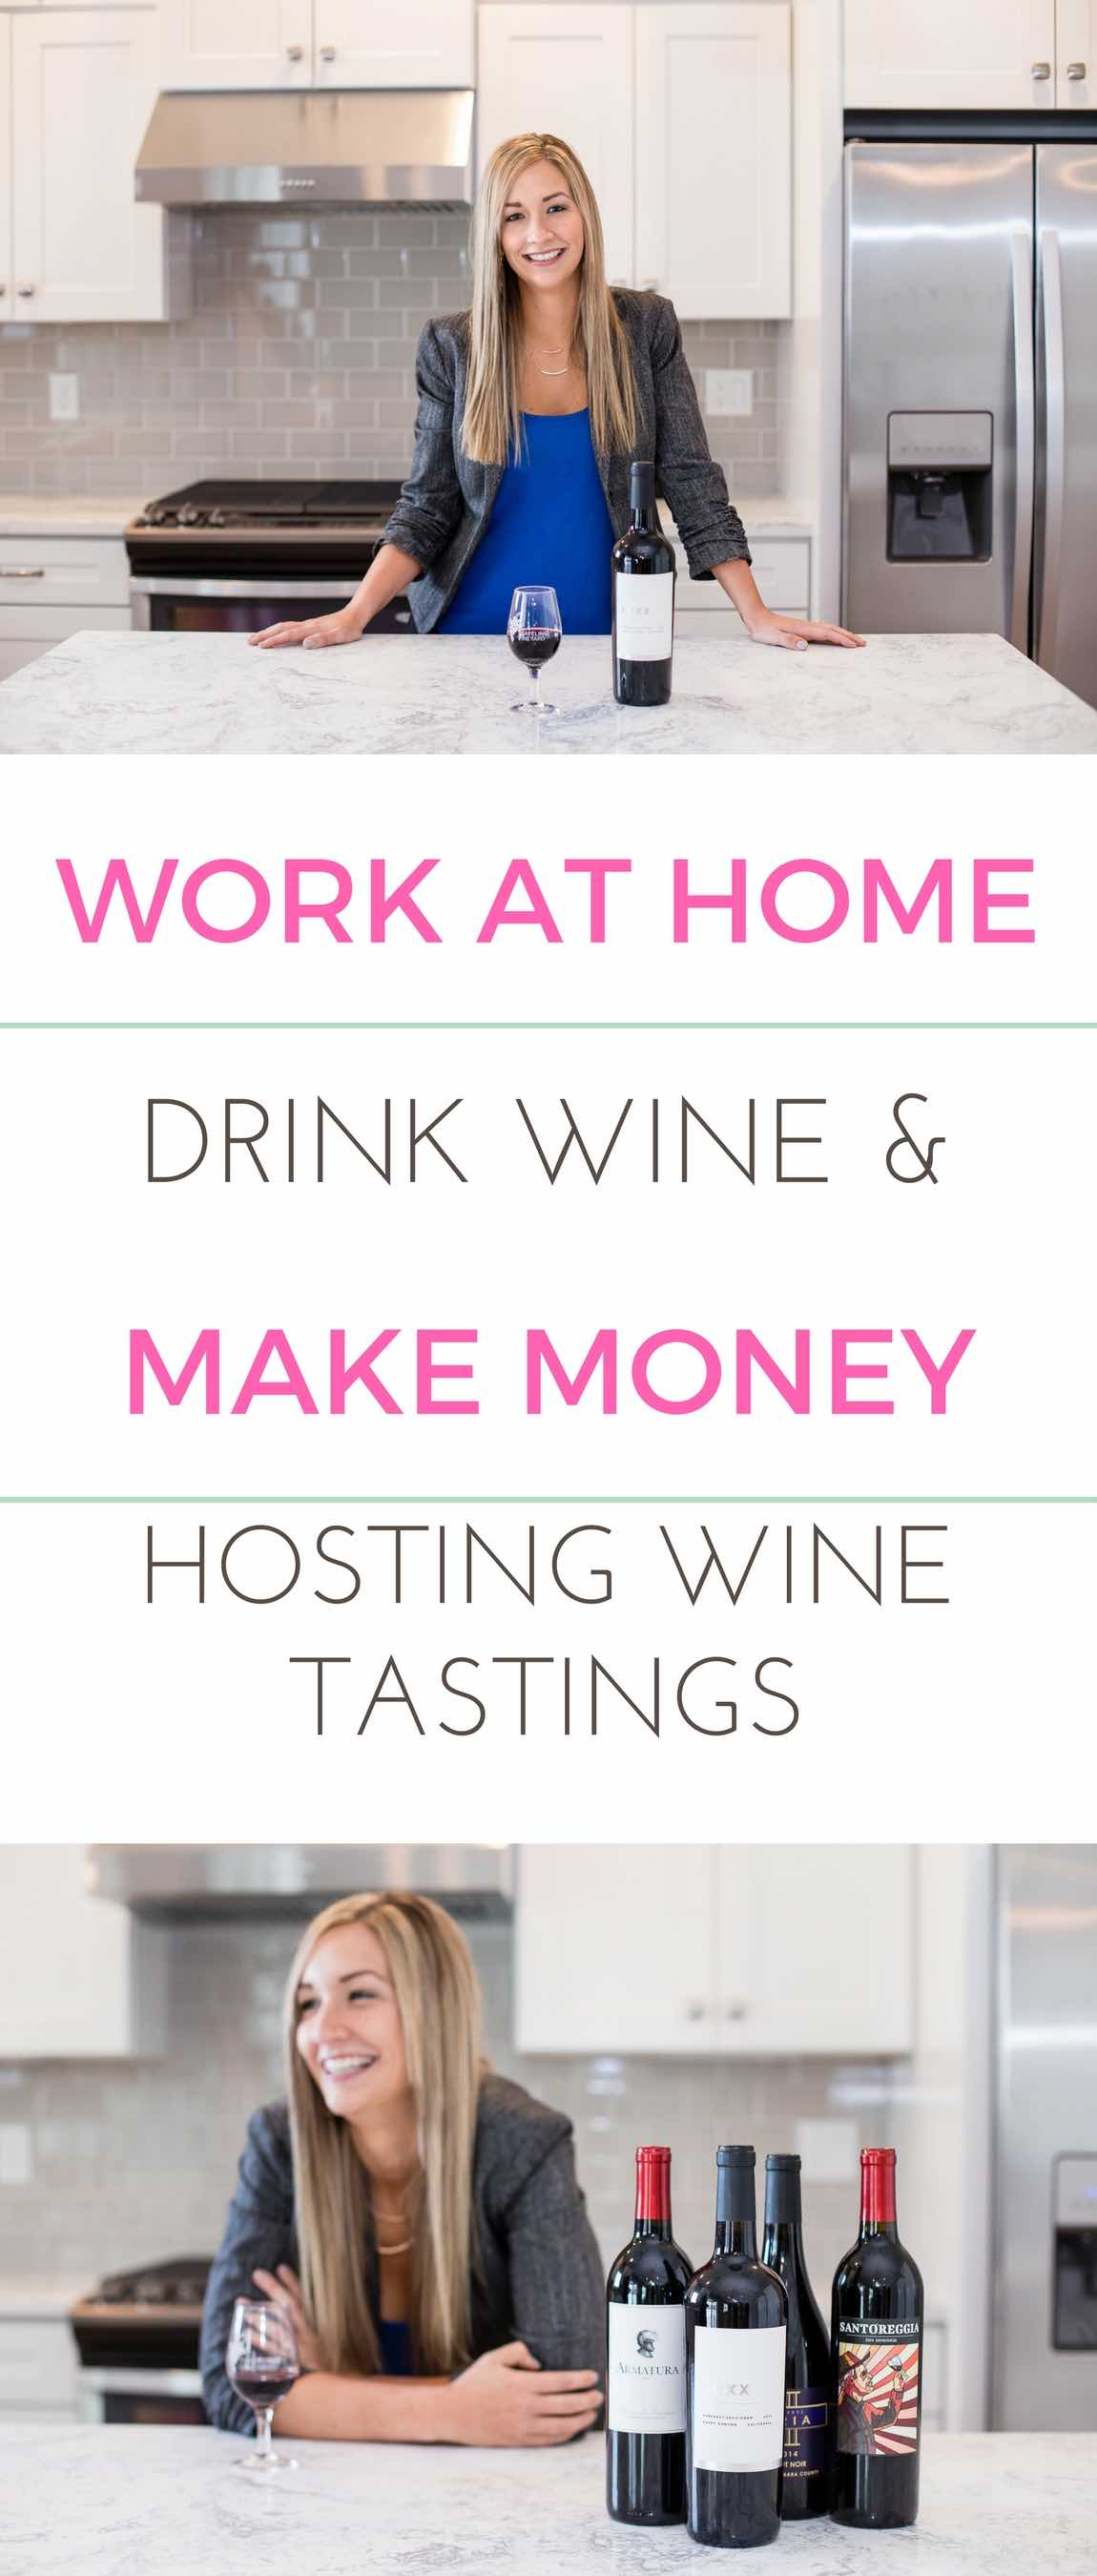 A flexible job that lets me work at home drinking wine? Yes, please!